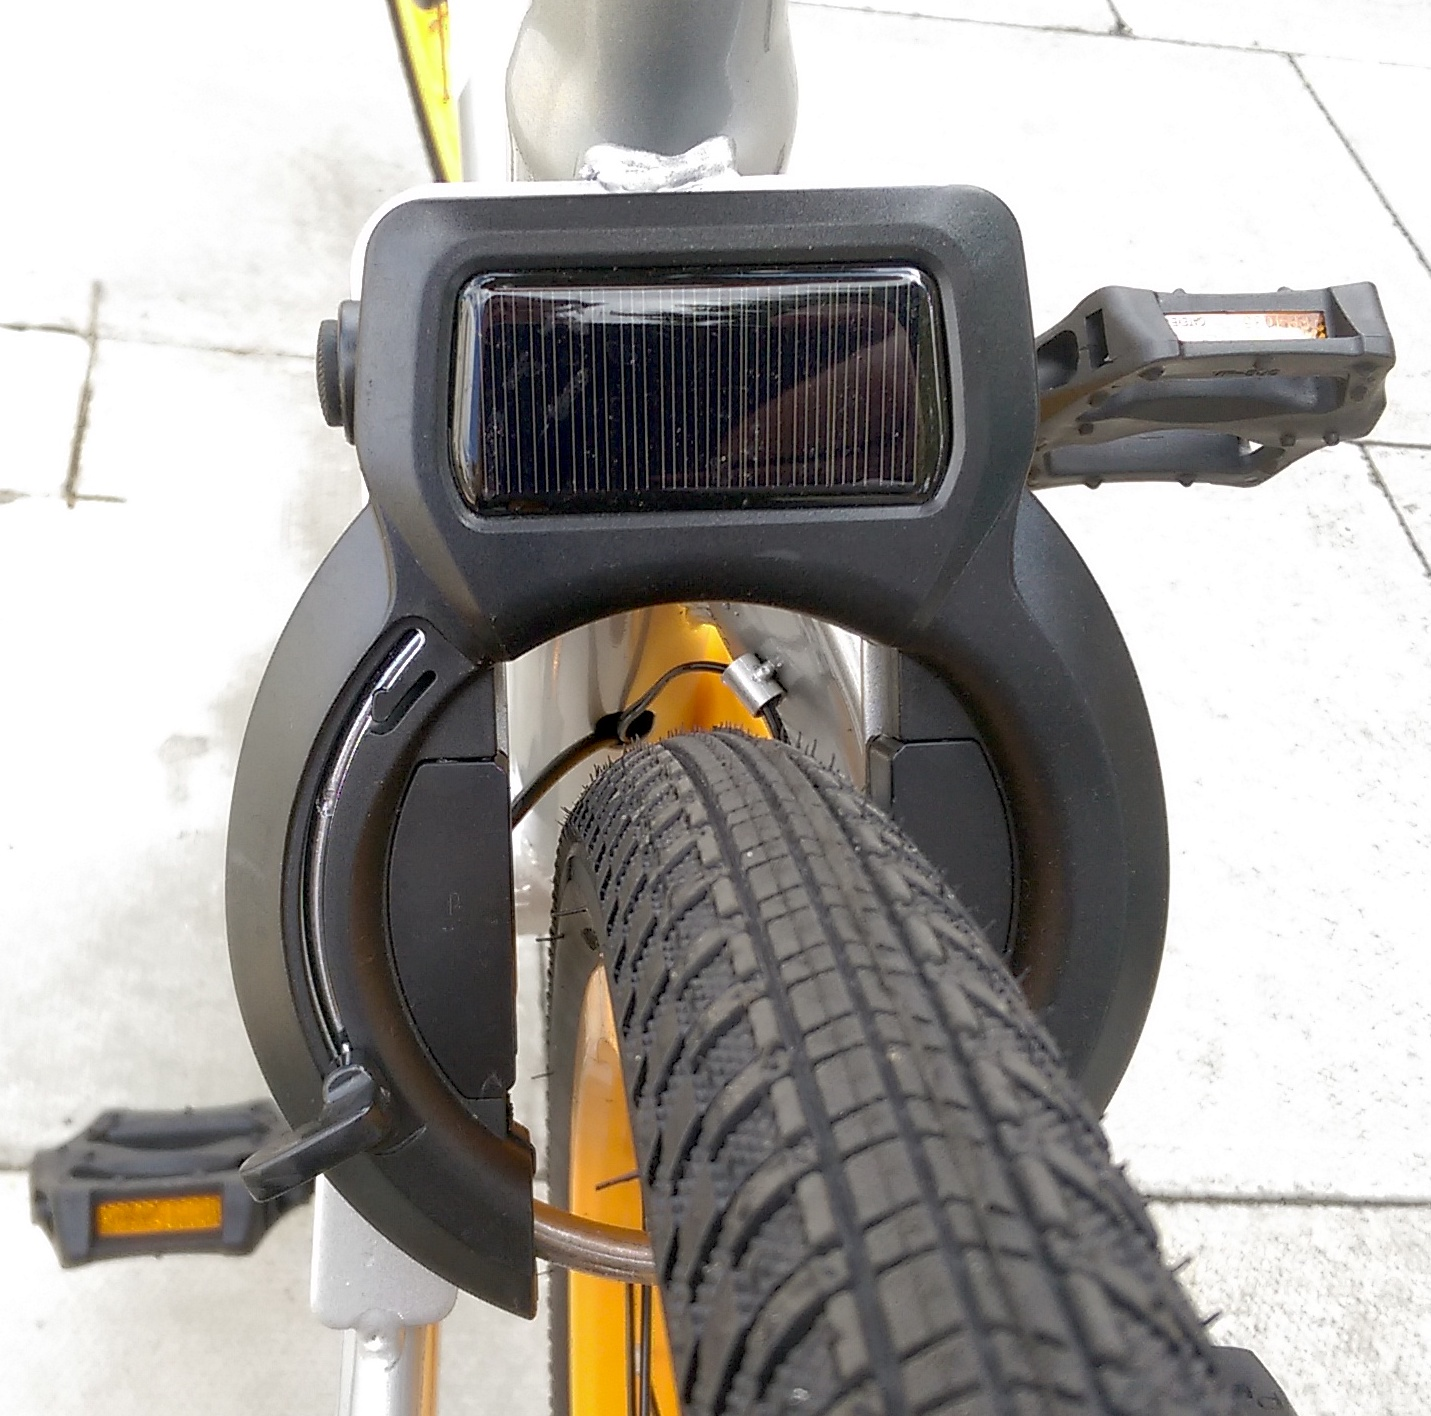 - Remotely activated bike lock